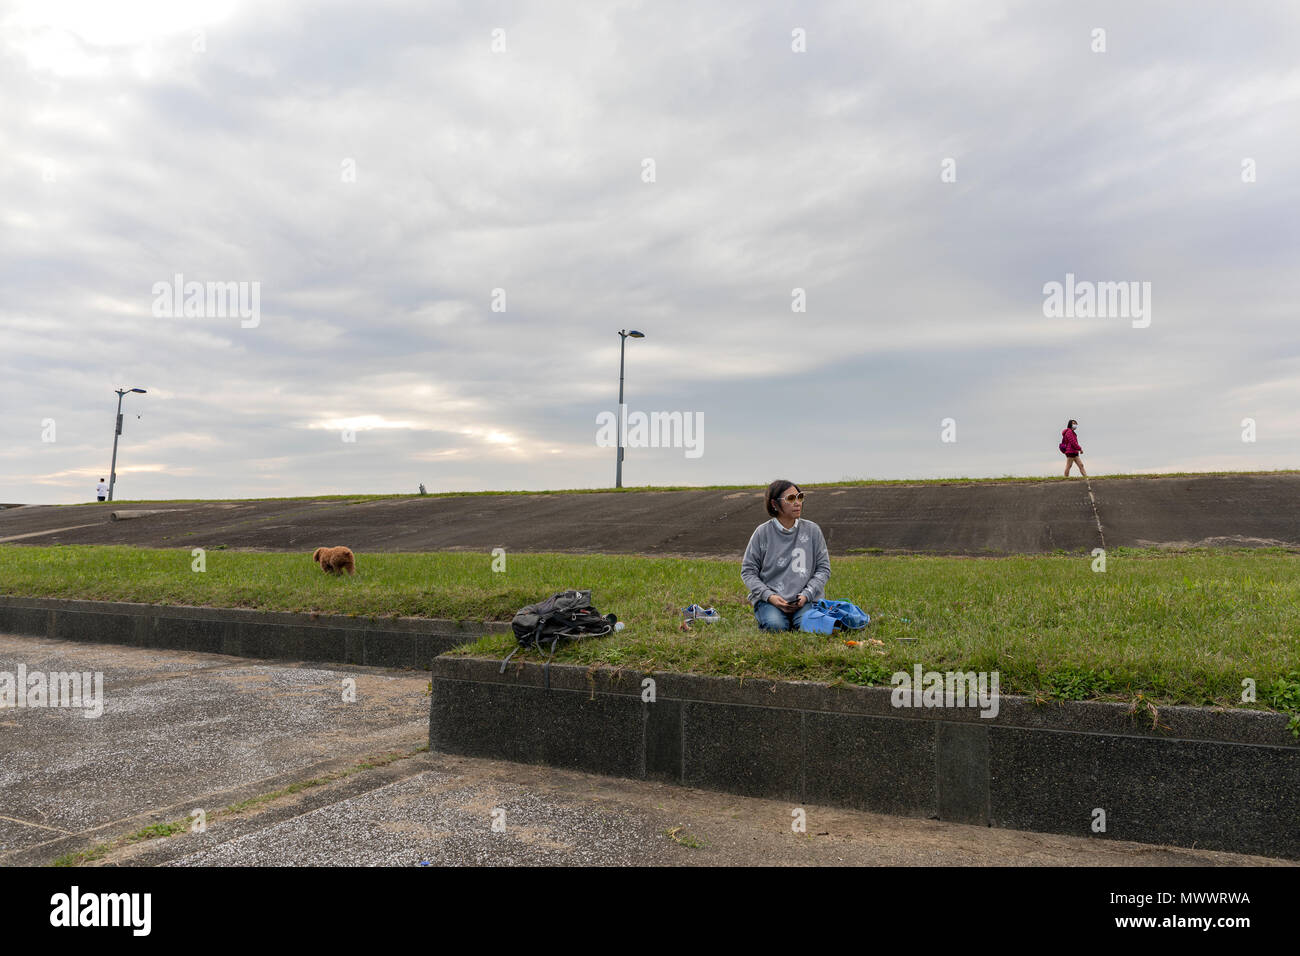 Woman sitting alone on a grass lawn under cloudy skies with her dog and two people in the distance walking away from her in different directionsdiscon - Stock Image